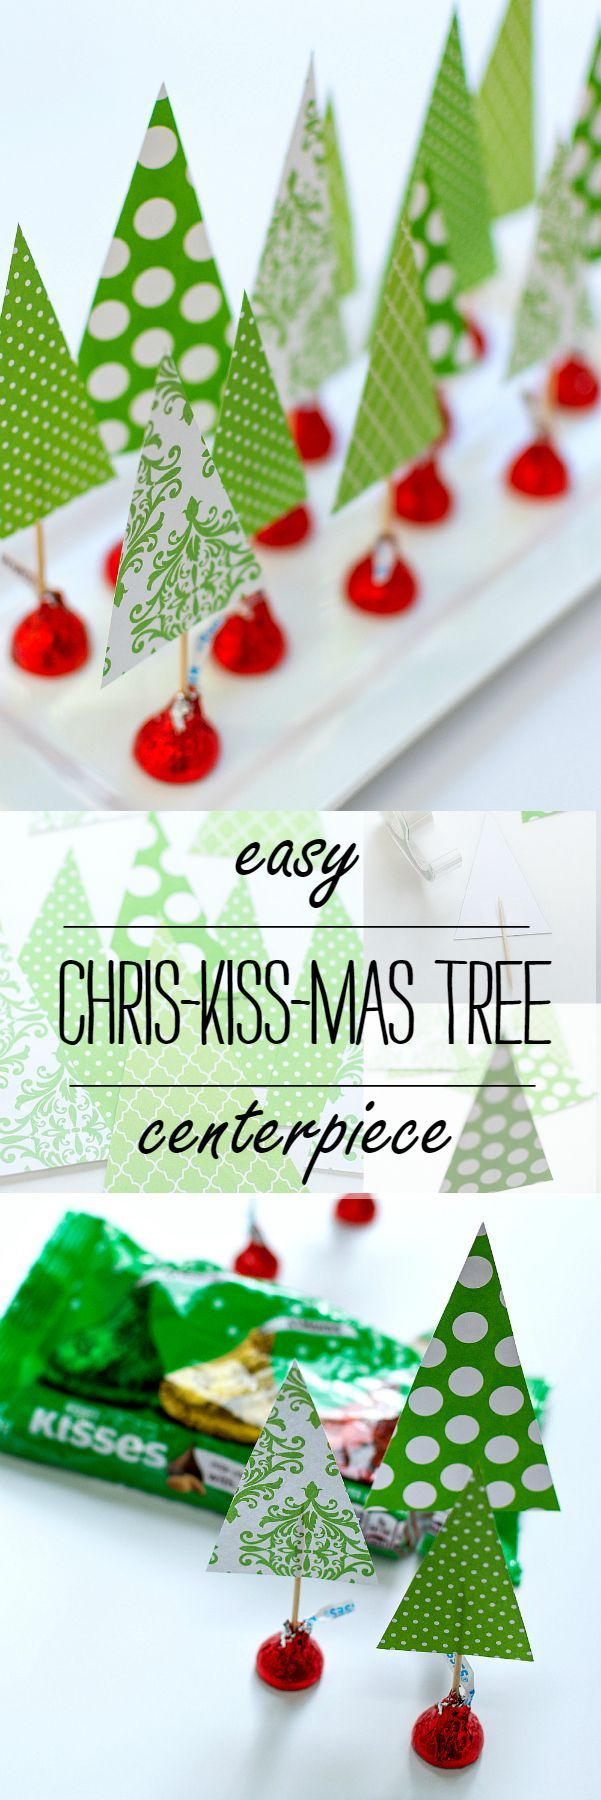 Delightful Work Christmas Party Activity Ideas Part - 11: Christmas Crafts With Kids